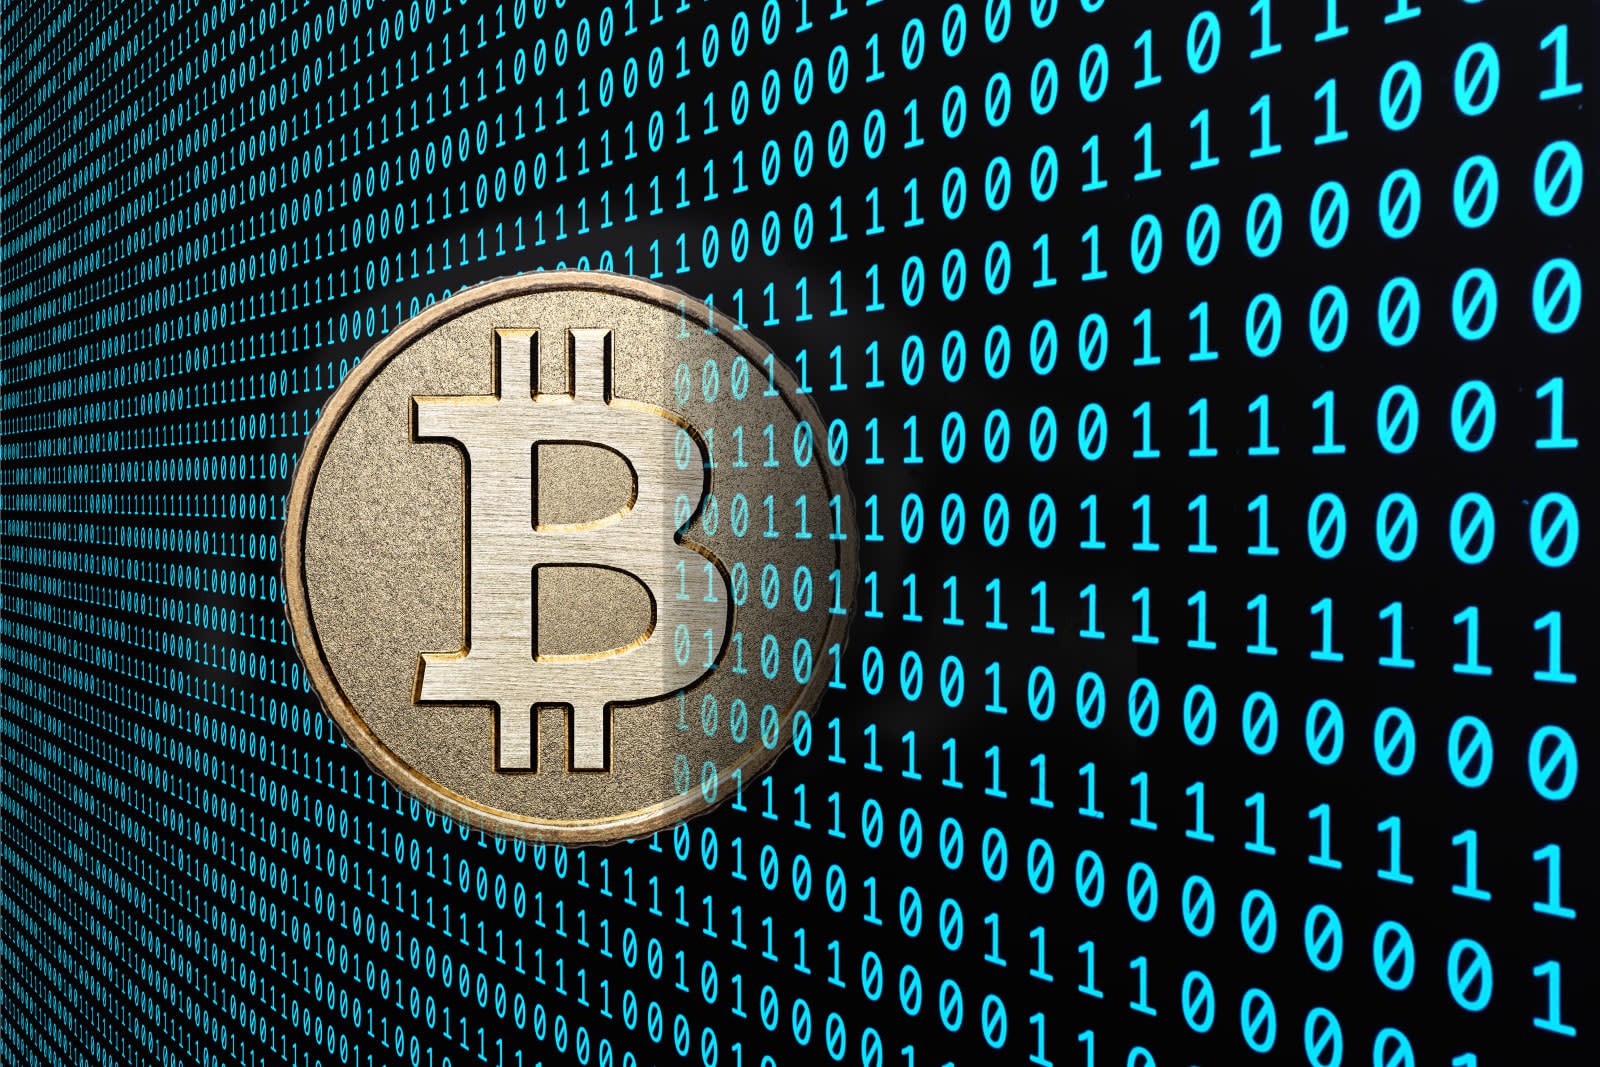 Nasdaq plans to offer bitcoin futures in early 2018